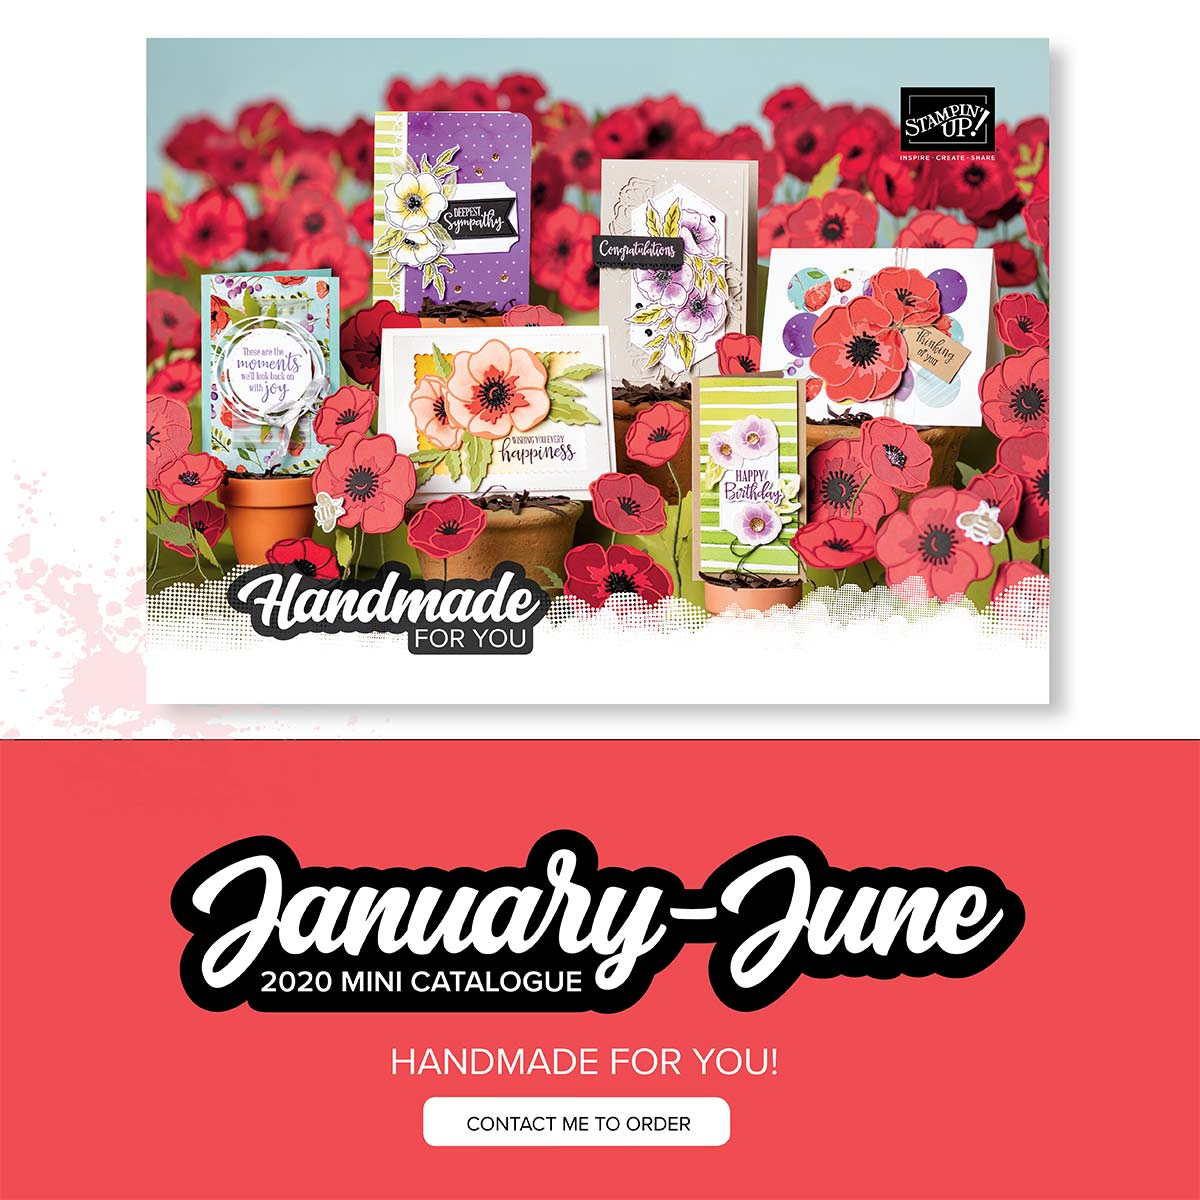 Janary - June 2020 Mini Catalogue